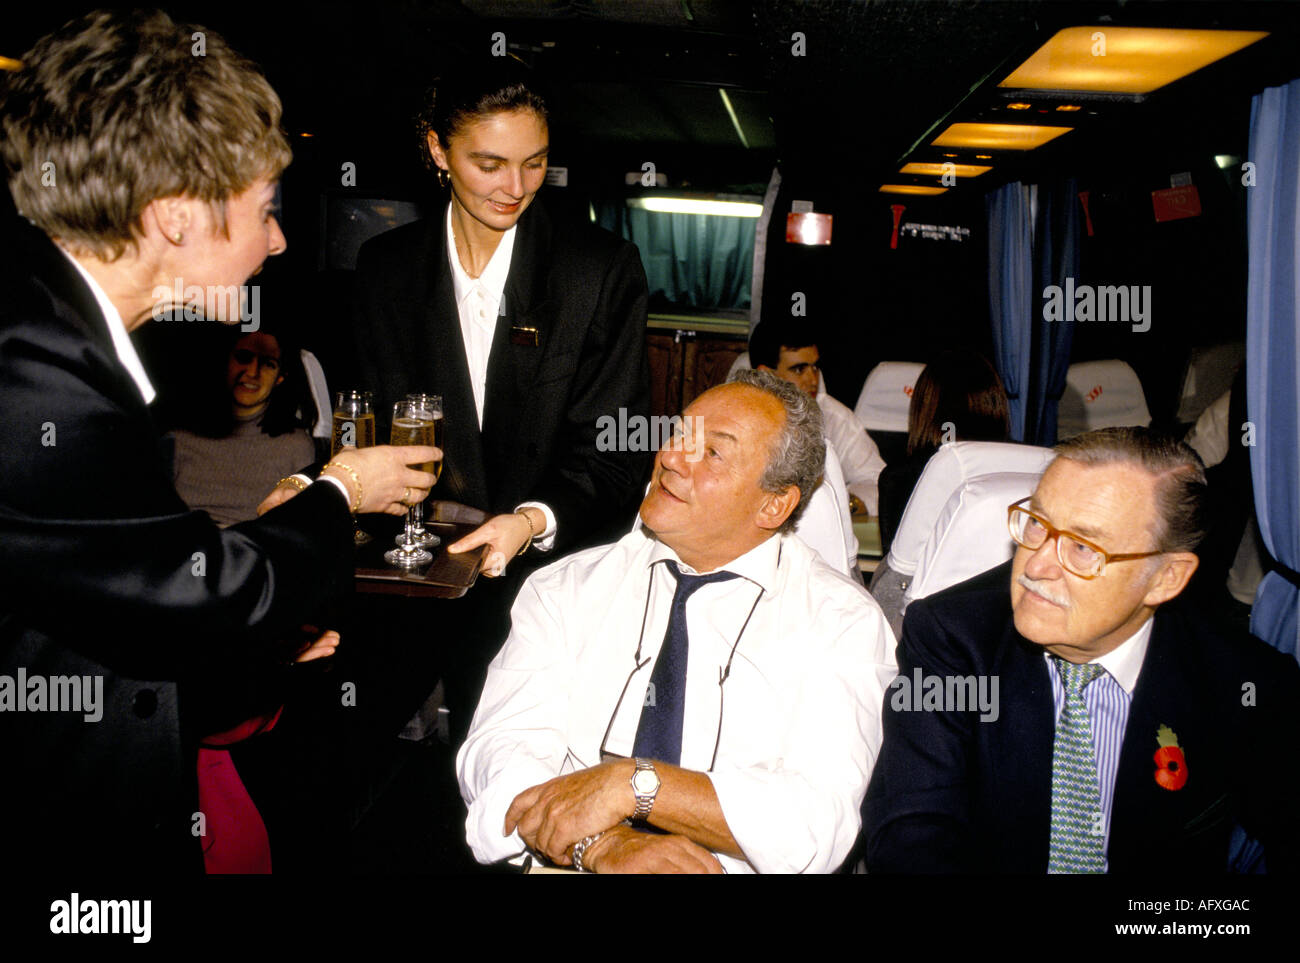 British restaurateur John Gold white shirt TV broadcaster Alan Wicker being served with champagne executive coach Circa 1985 - Stock Image